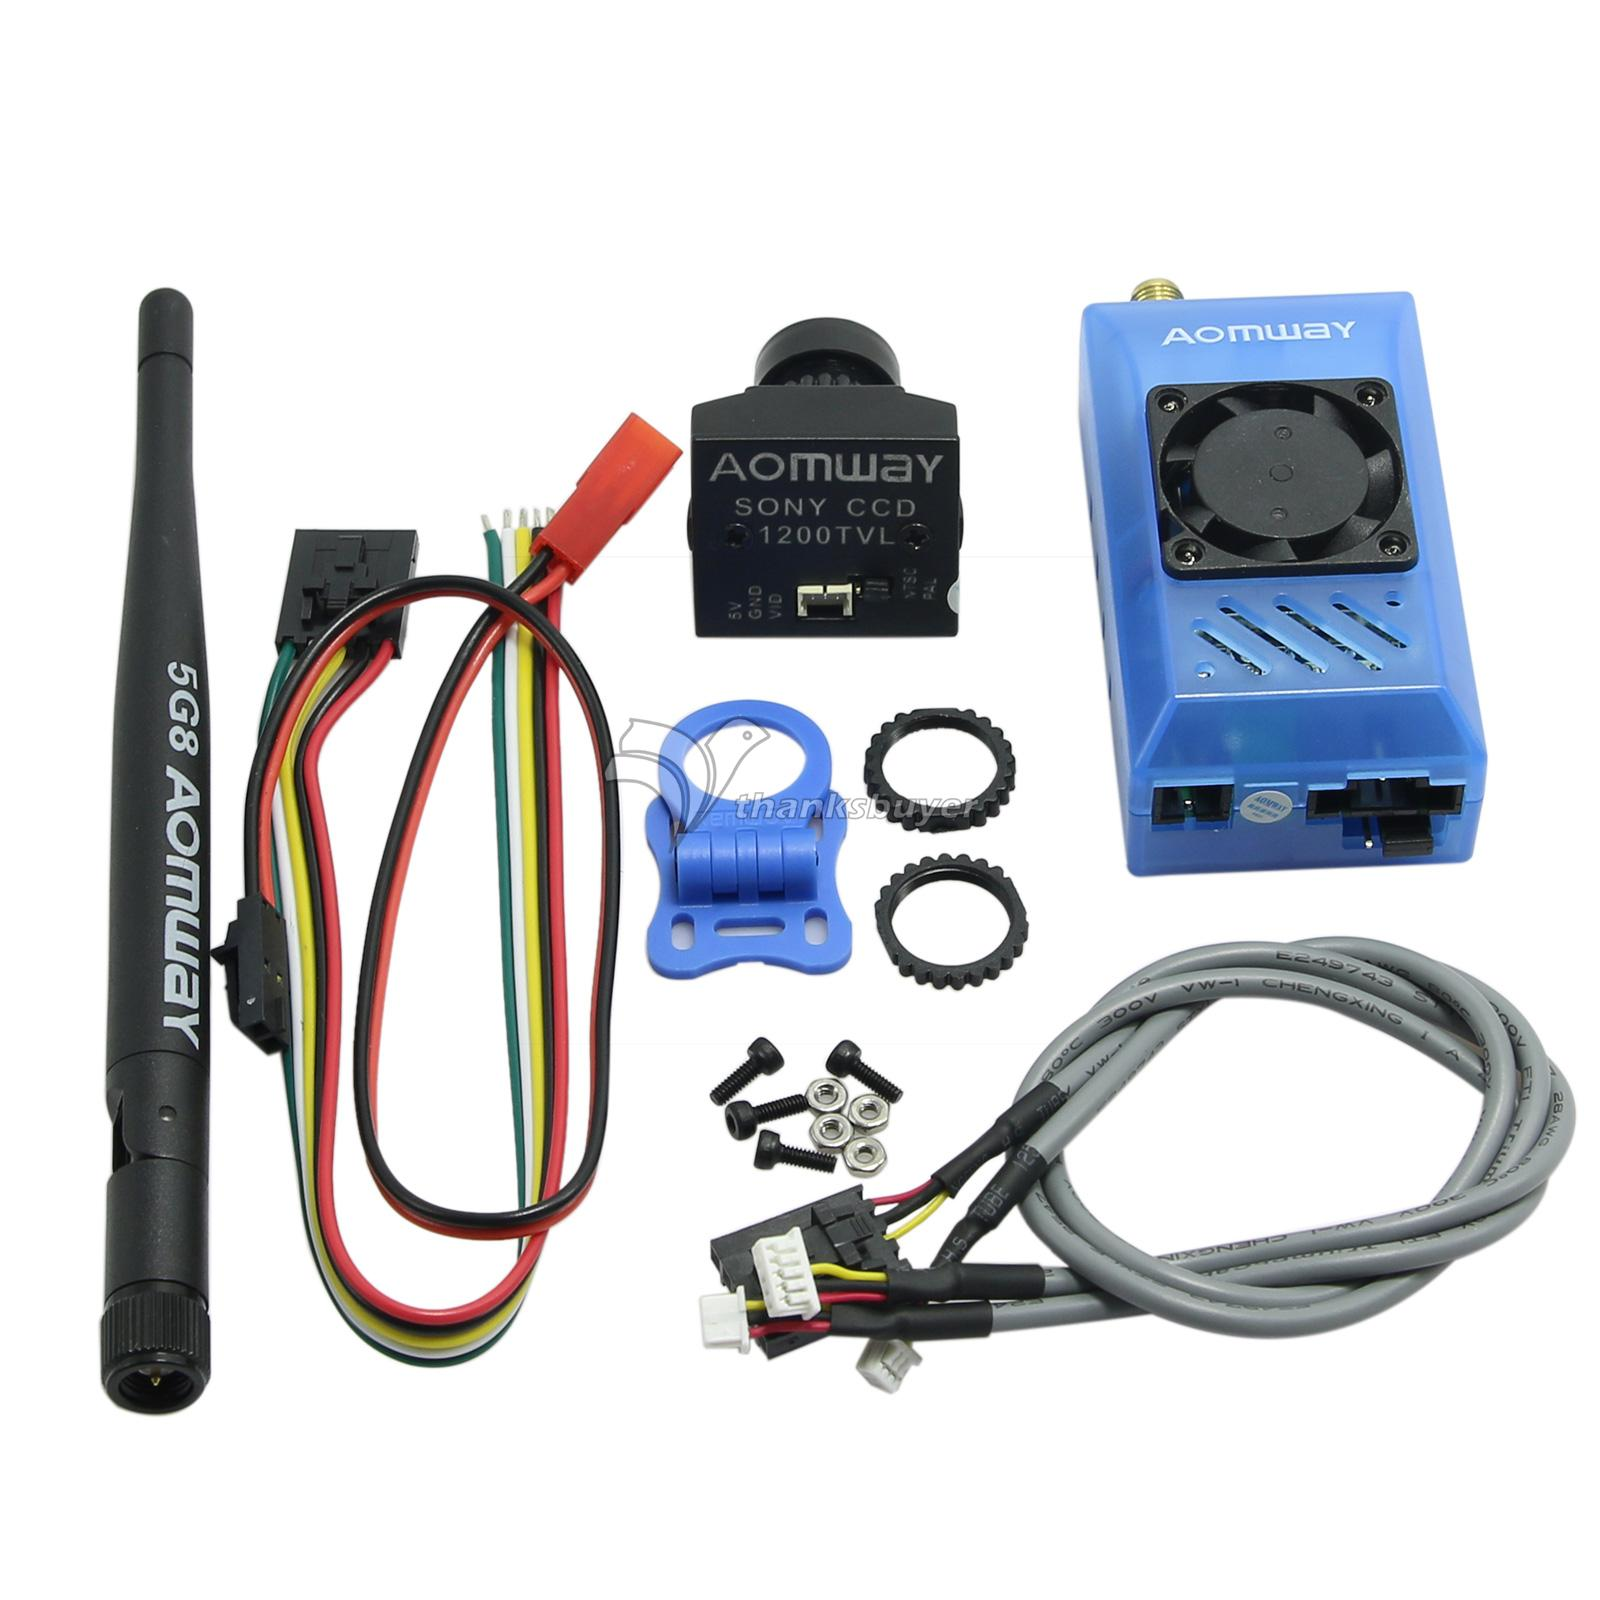 Aomway 5.8G 15CH 1000MW TX Transmitter with 1200TVL 960P HD Mini Cam Combo for Sony CCD FPV Drone Quadcopter aomway 1200tvl 960p ccd hd mini camera 2 8mm lens for fpv